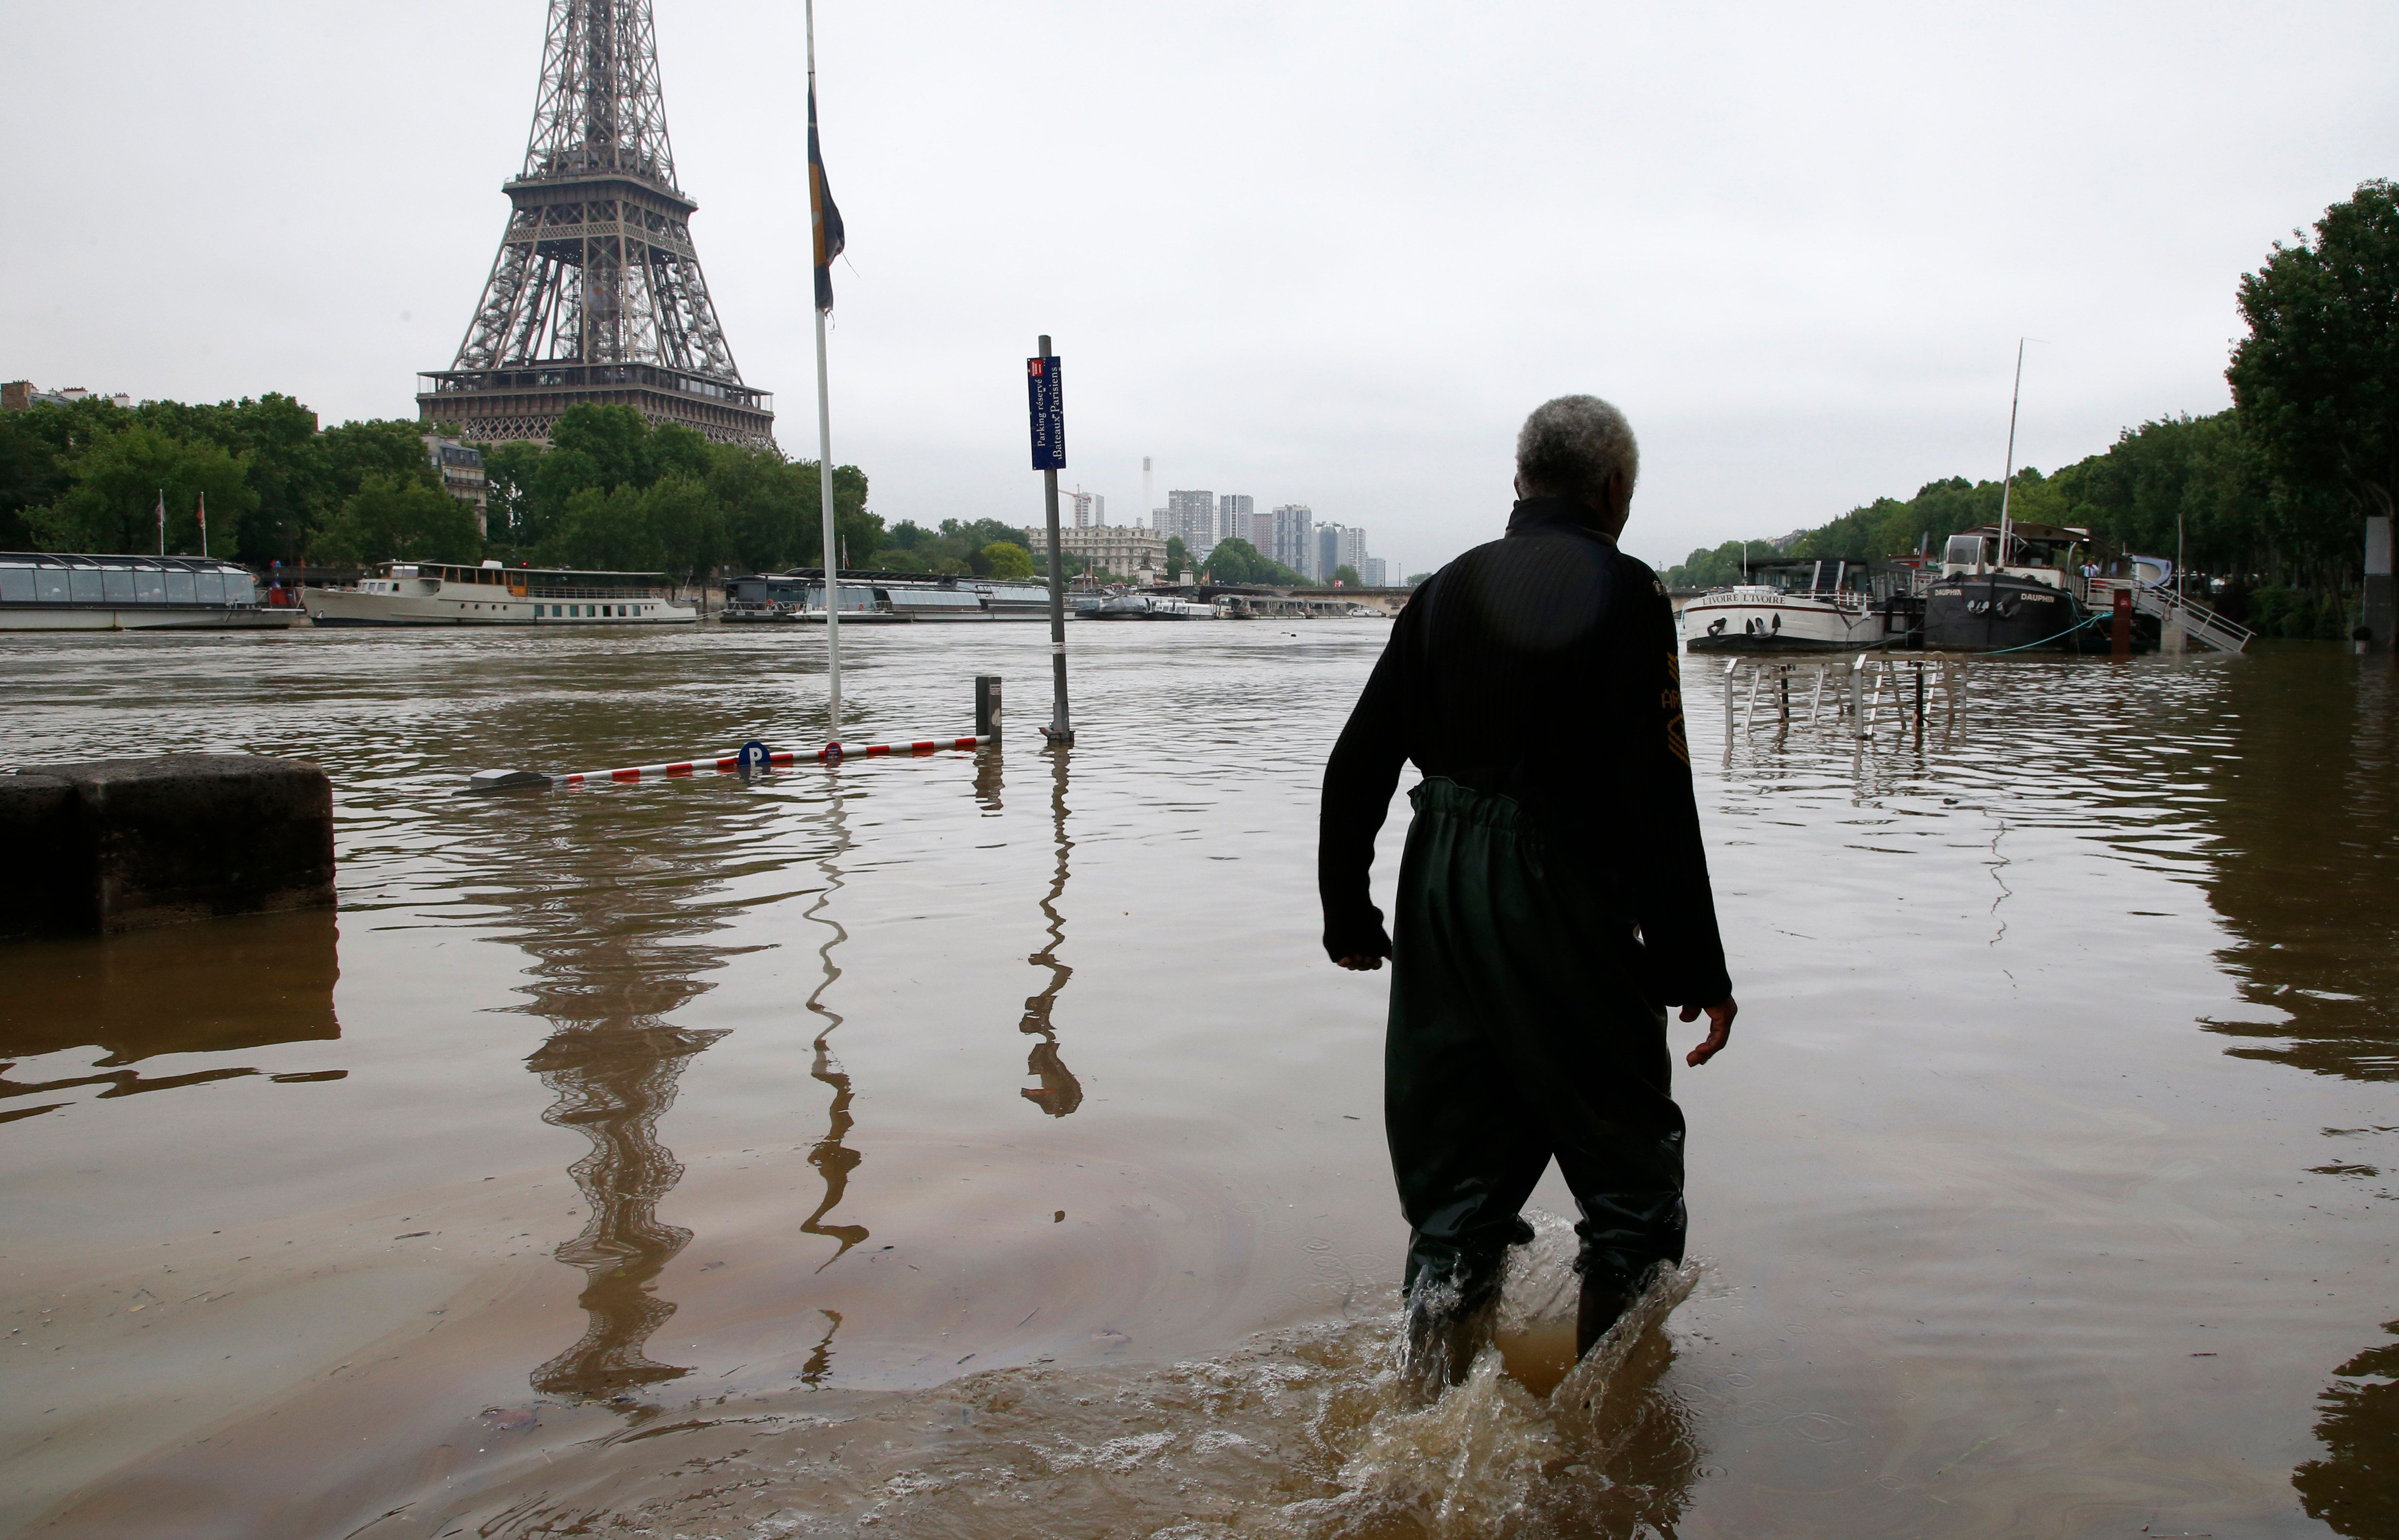 A man walks on a flooded road near his houseboat moored near the Eiffel towel during flooding on the banks of the Seine River in Paris, France, after days of almost non-stop rain caused flooding in the country June 2, 2016. REUTERS/Pascal Rossignol